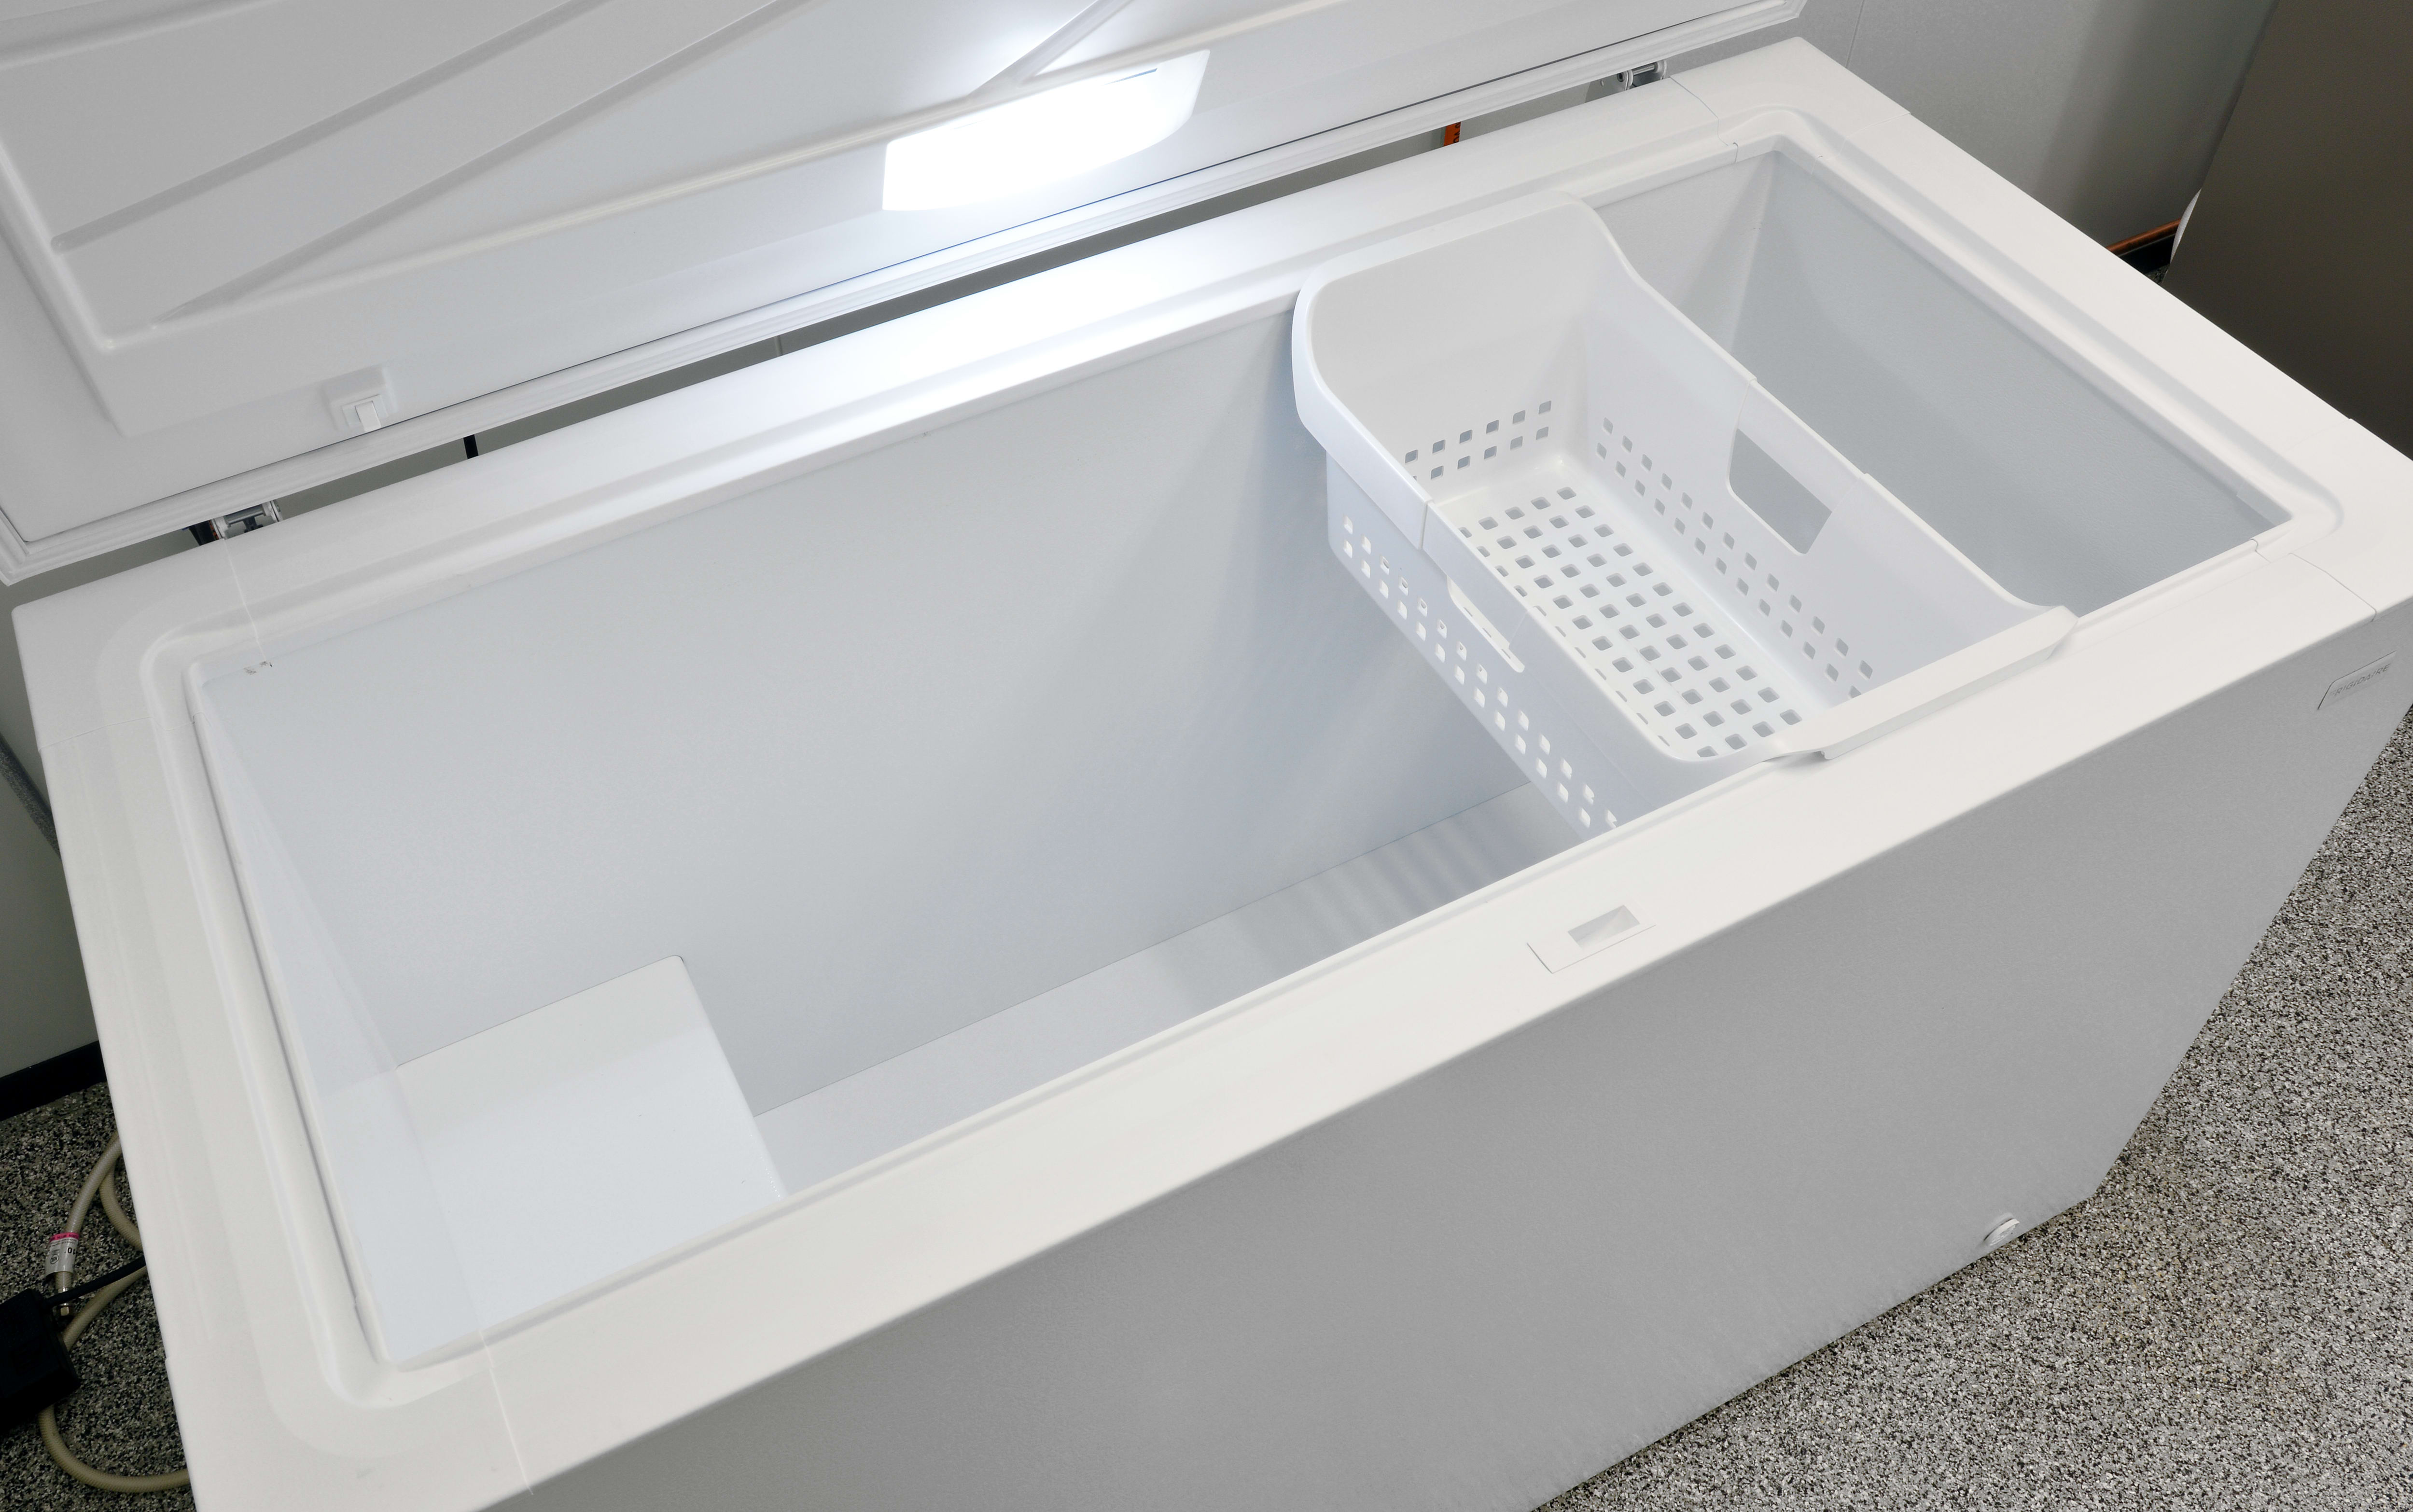 The interior of the Frigidaire FFFC16M5QW features just one sliding bucket.